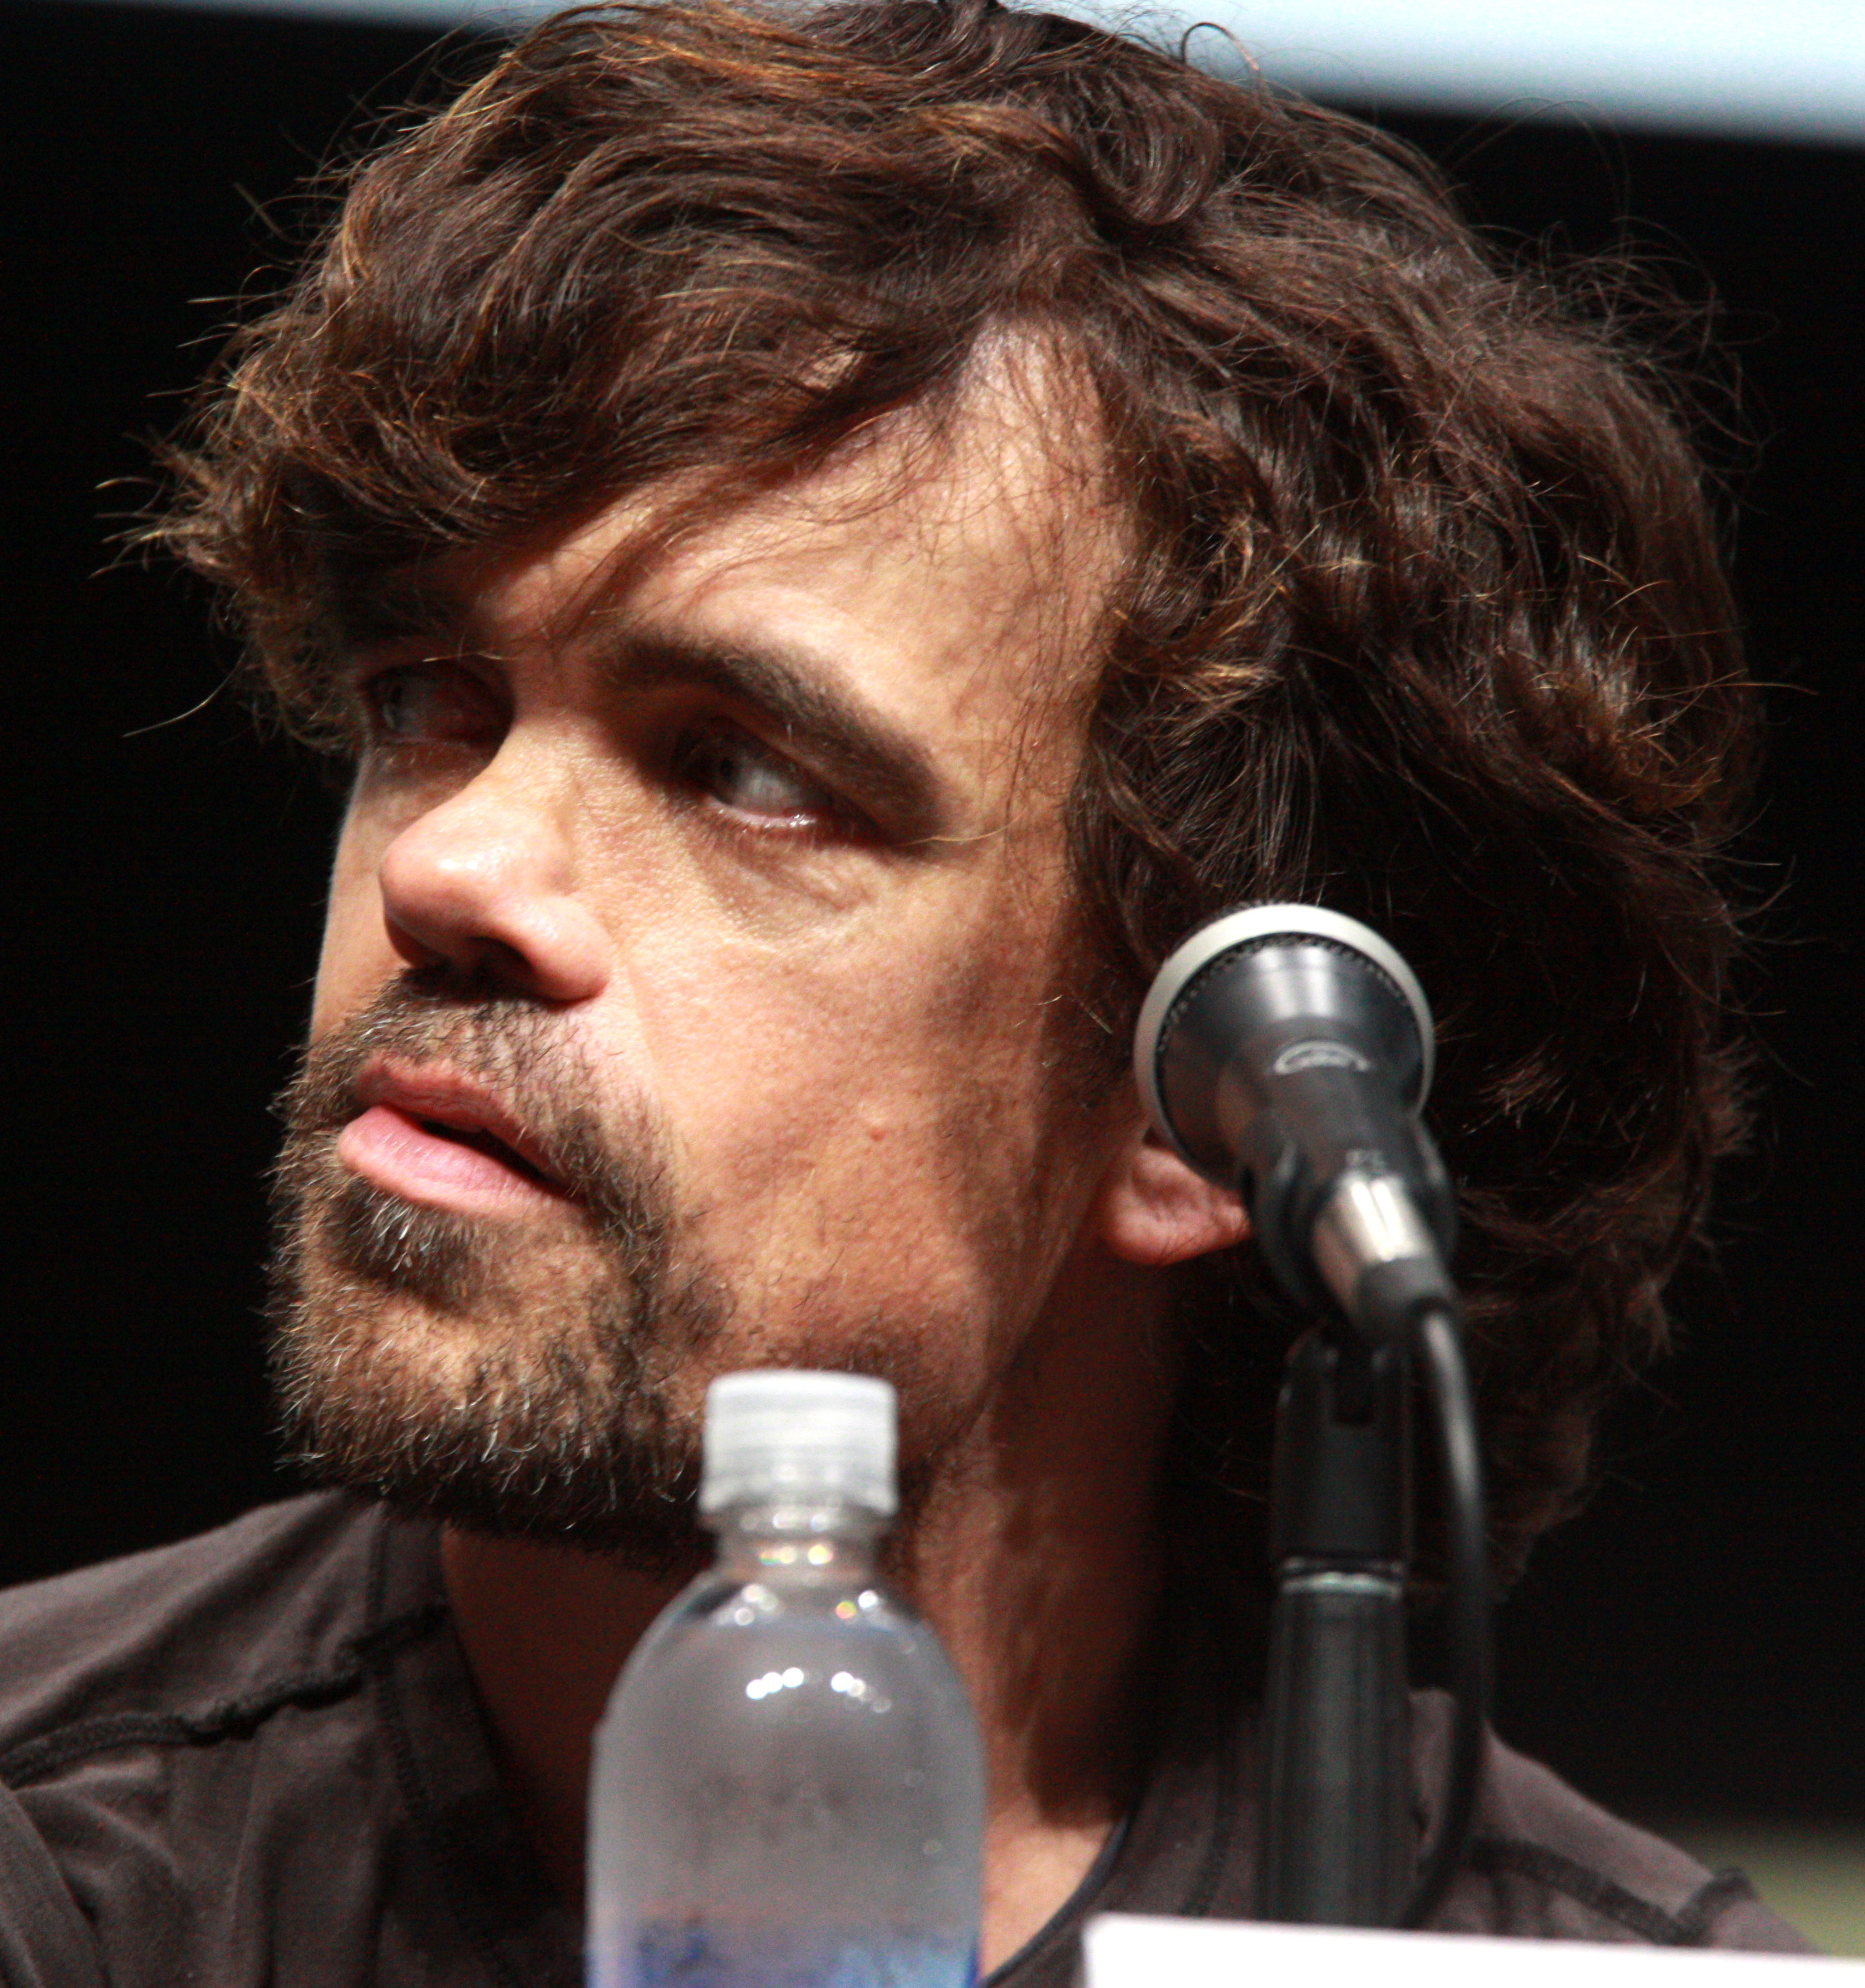 The 49-year old son of father (?) and mother(?) Peter Dinklage in 2018 photo. Peter Dinklage earned a 0.2 million dollar salary - leaving the net worth at 10 million in 2018